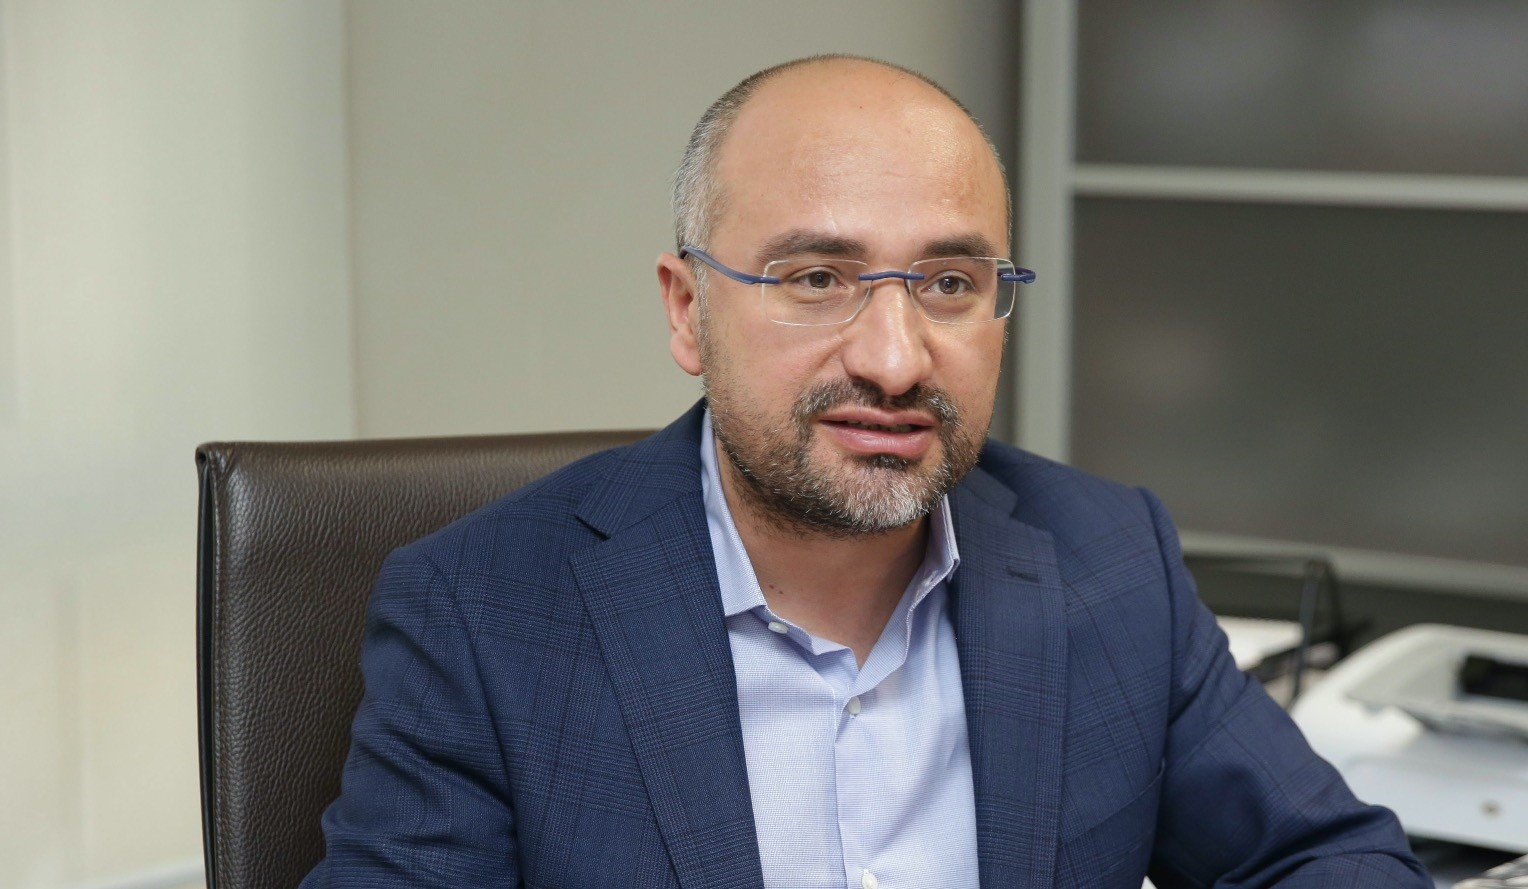 Nebi Miu015f said he believes that if the MHP-AK Party alliance is explained clearly and well enough, the Kurdish vote would not decline as argued by many.